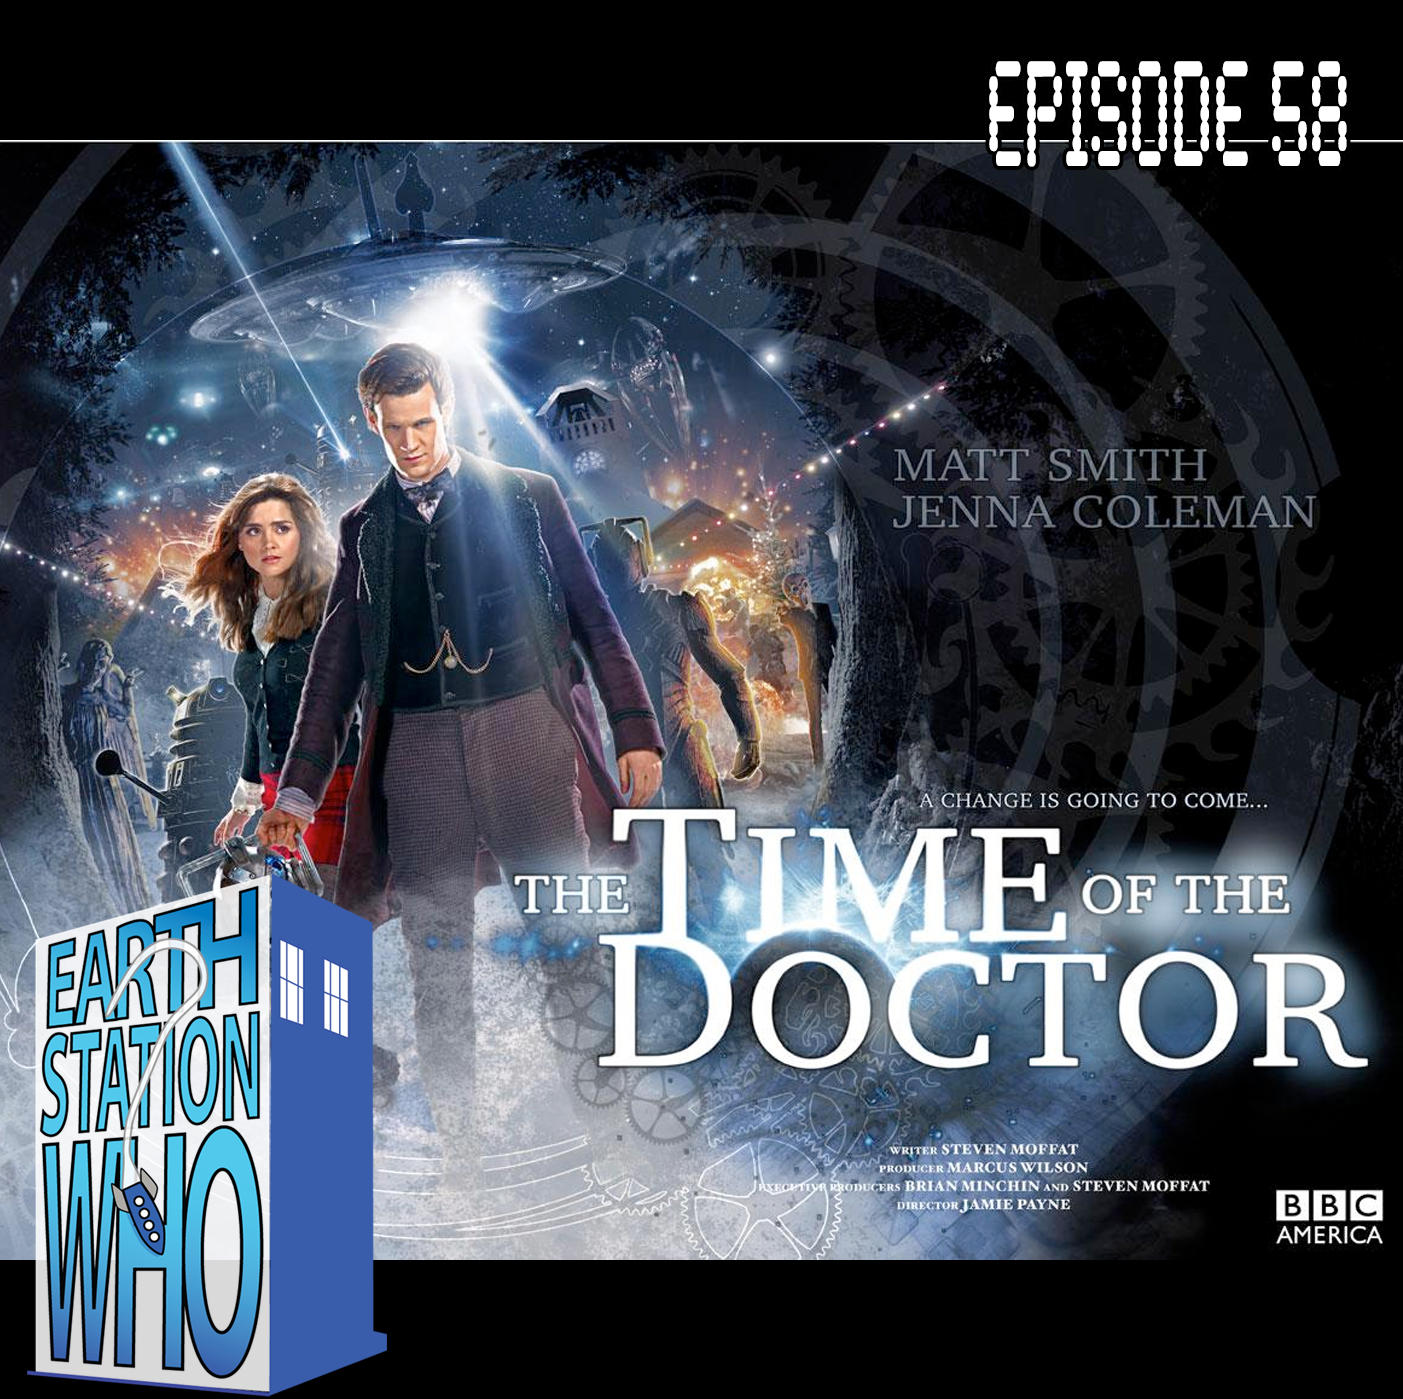 Earth Station Who Ep 58